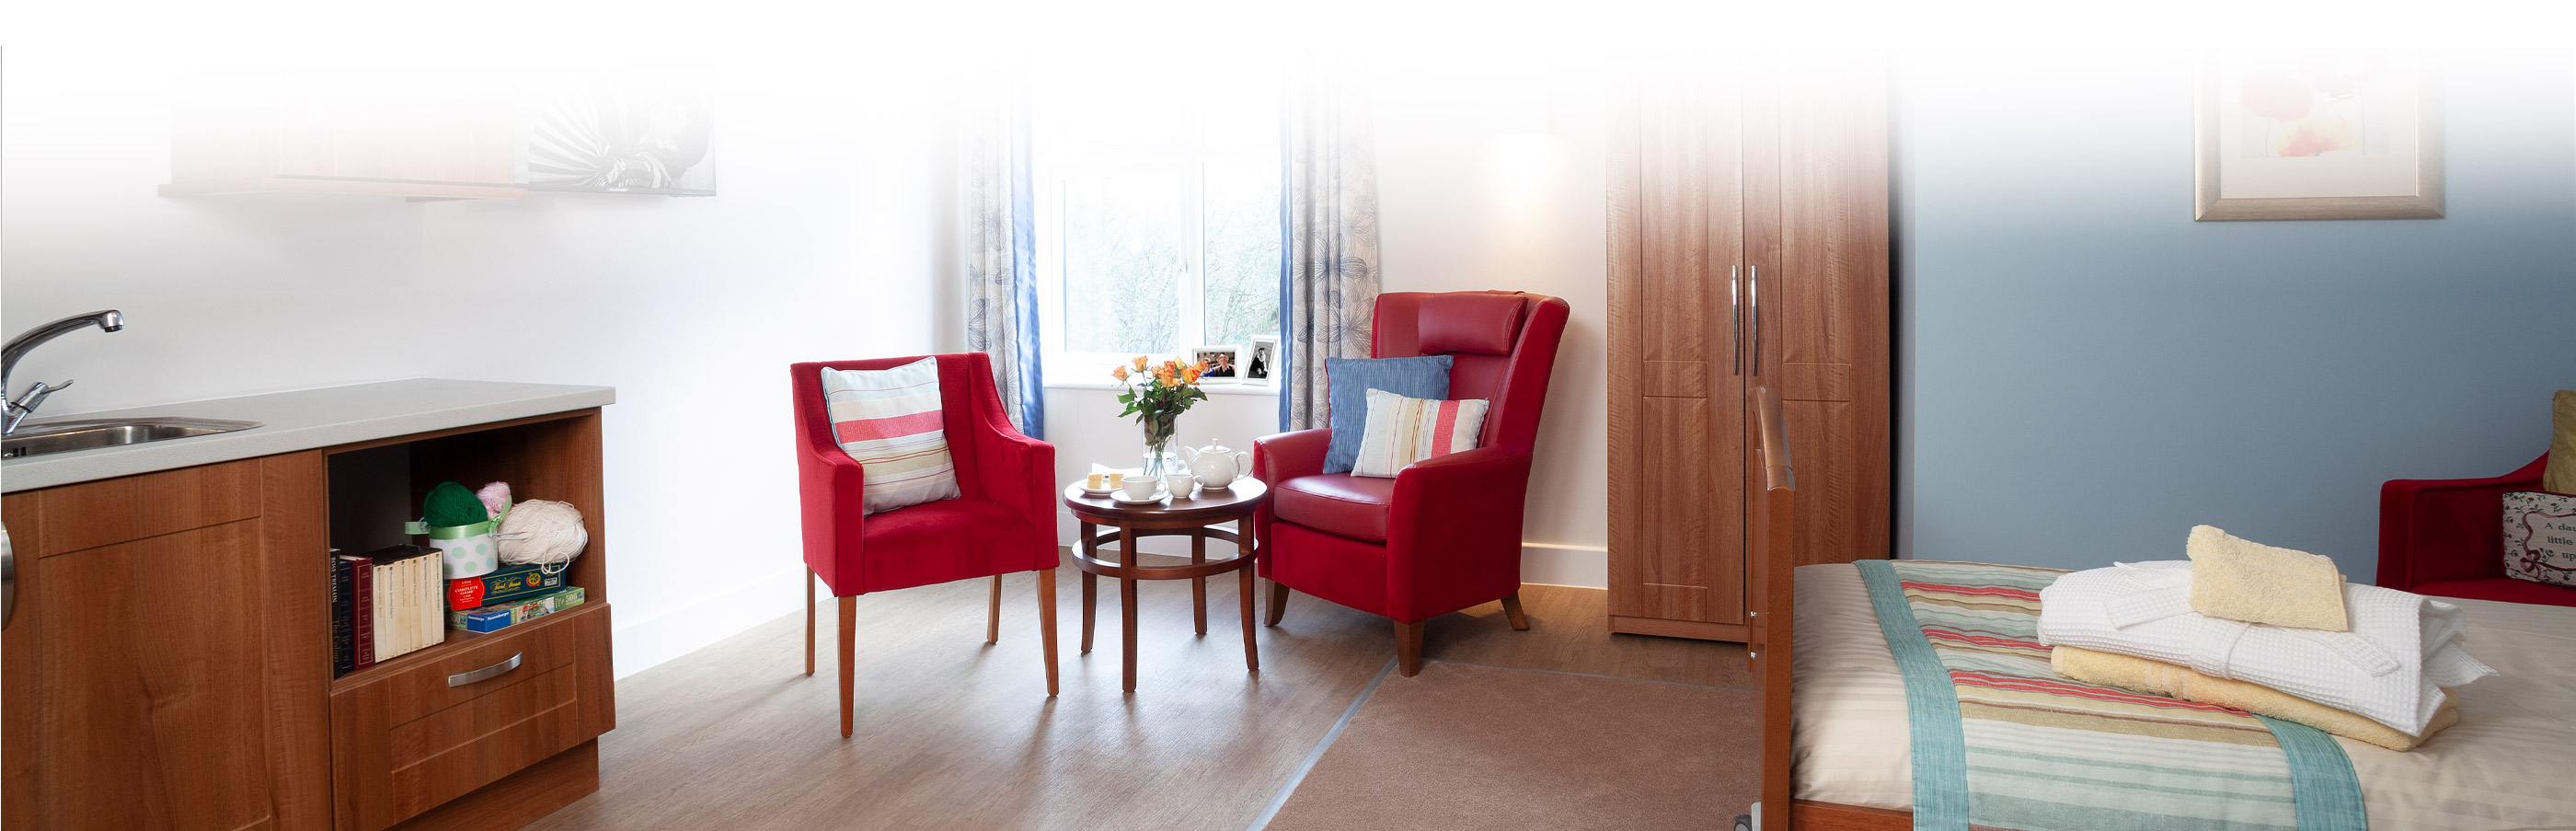 Bedroom red chairs at Cedar View Care Centre Croydon